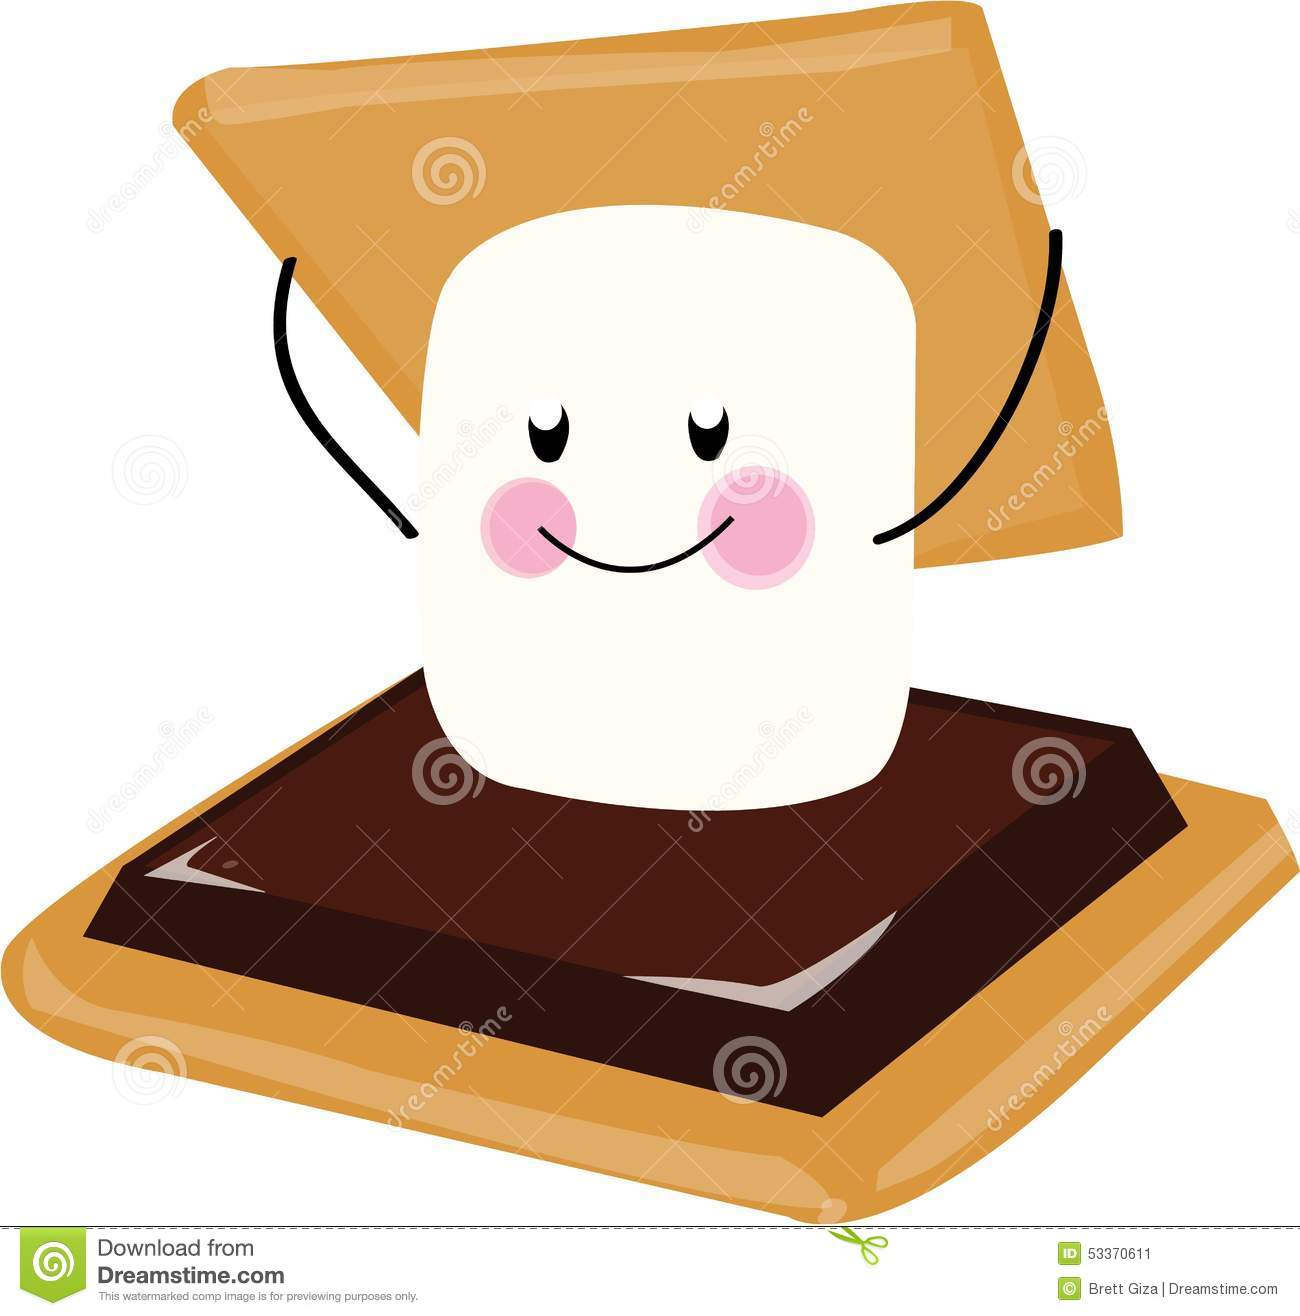 Smore s clipart clip art freeuse download Smores Clipart | Free download best Smores Clipart on ClipArtMag.com clip art freeuse download